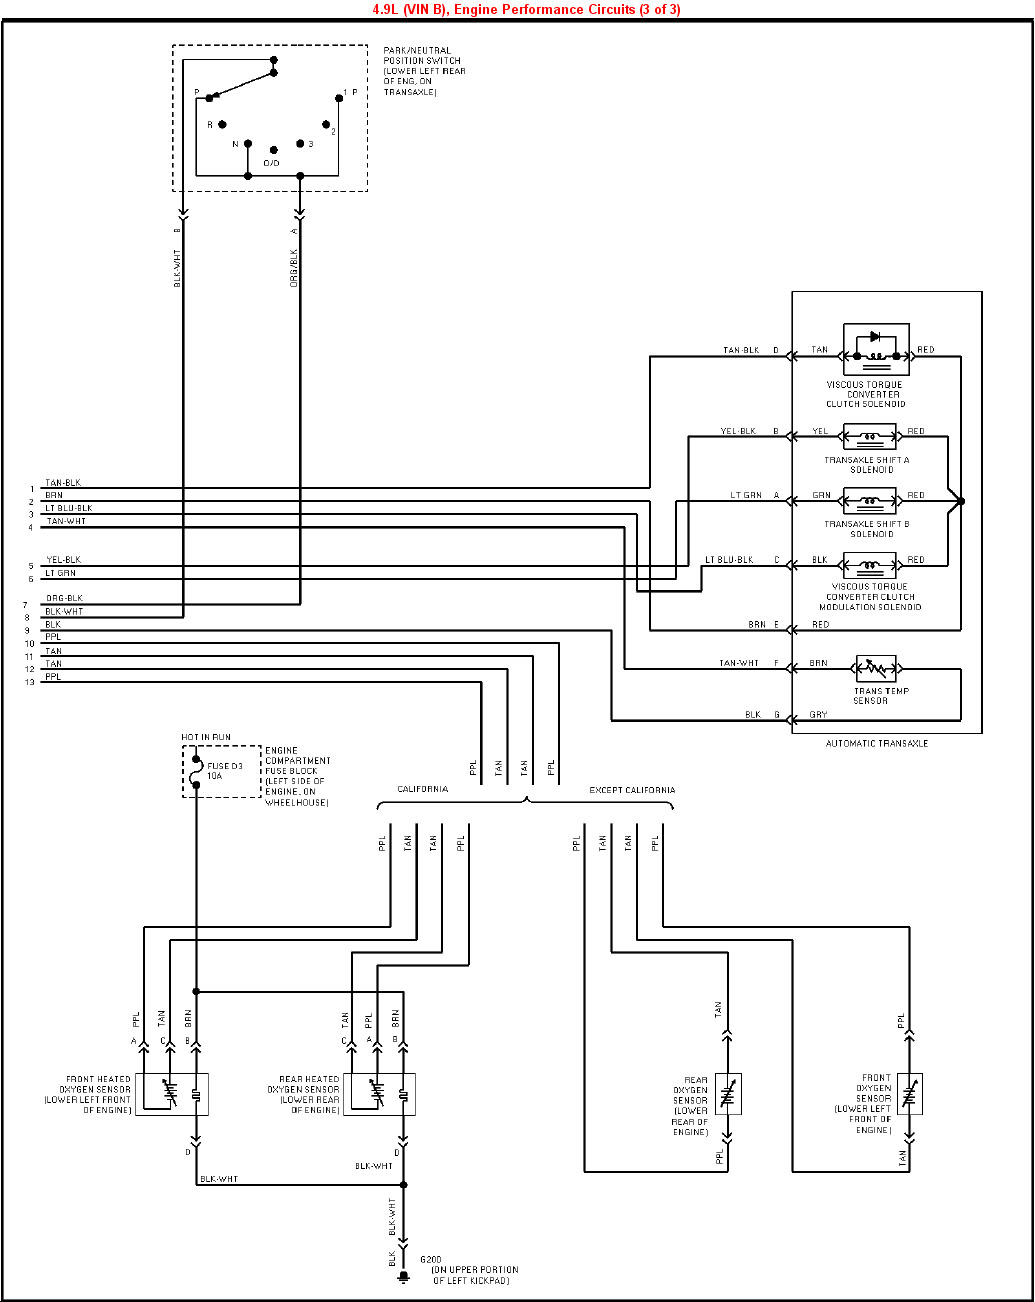 1995 Cadillac Deville 4.9L VIN B PCM (3 of 3) index of gearhead efi wiring 1995 cadillac deville radio wiring diagram at couponss.co